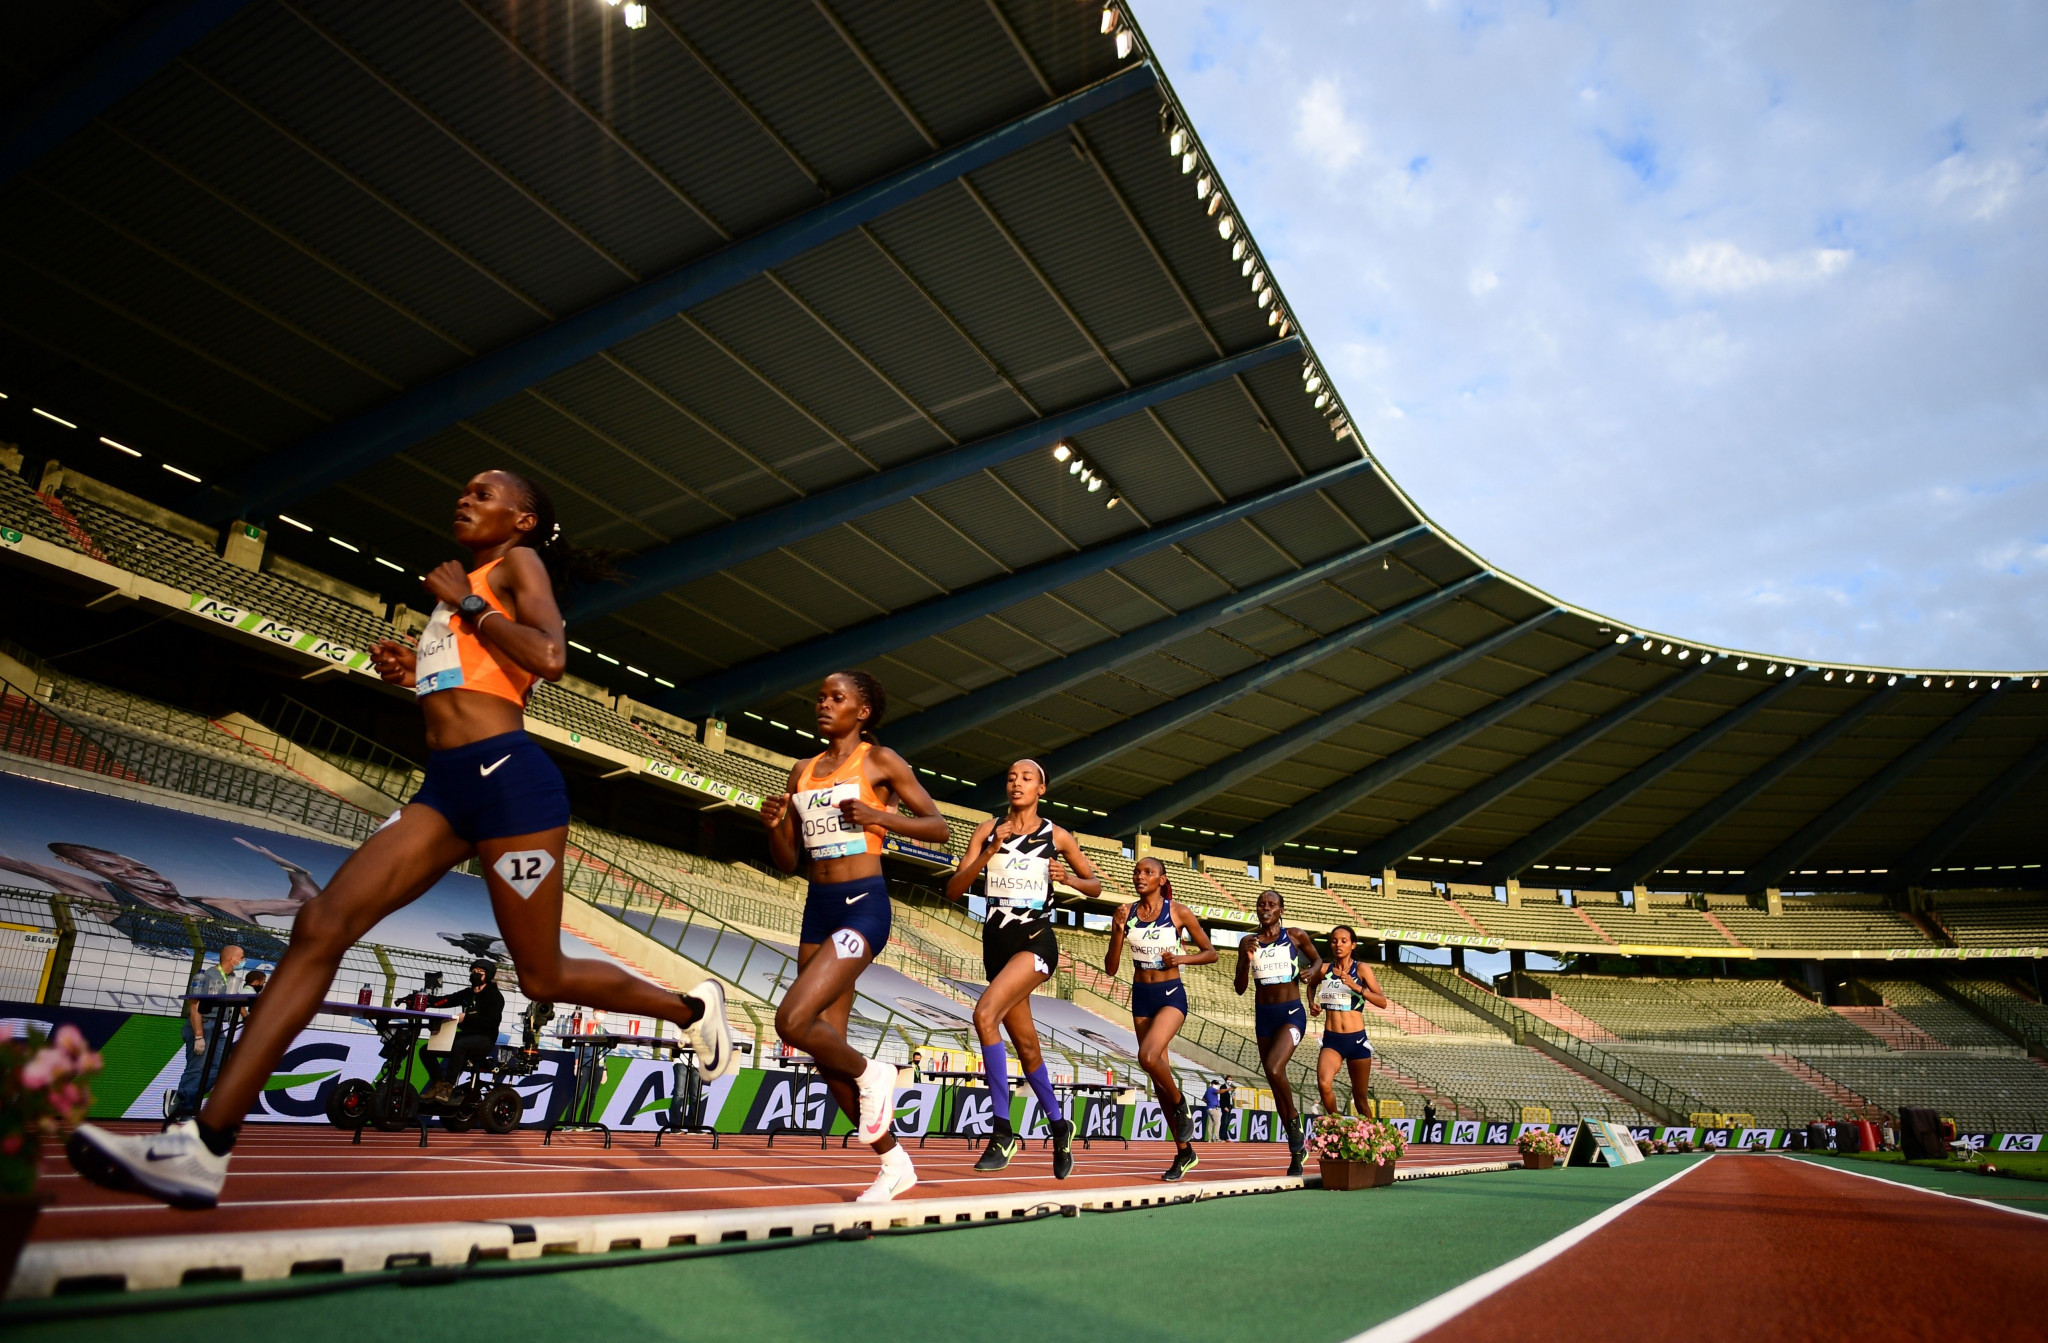 Track and field athletes have been able to compete again at Diamond League events ©Getty Images